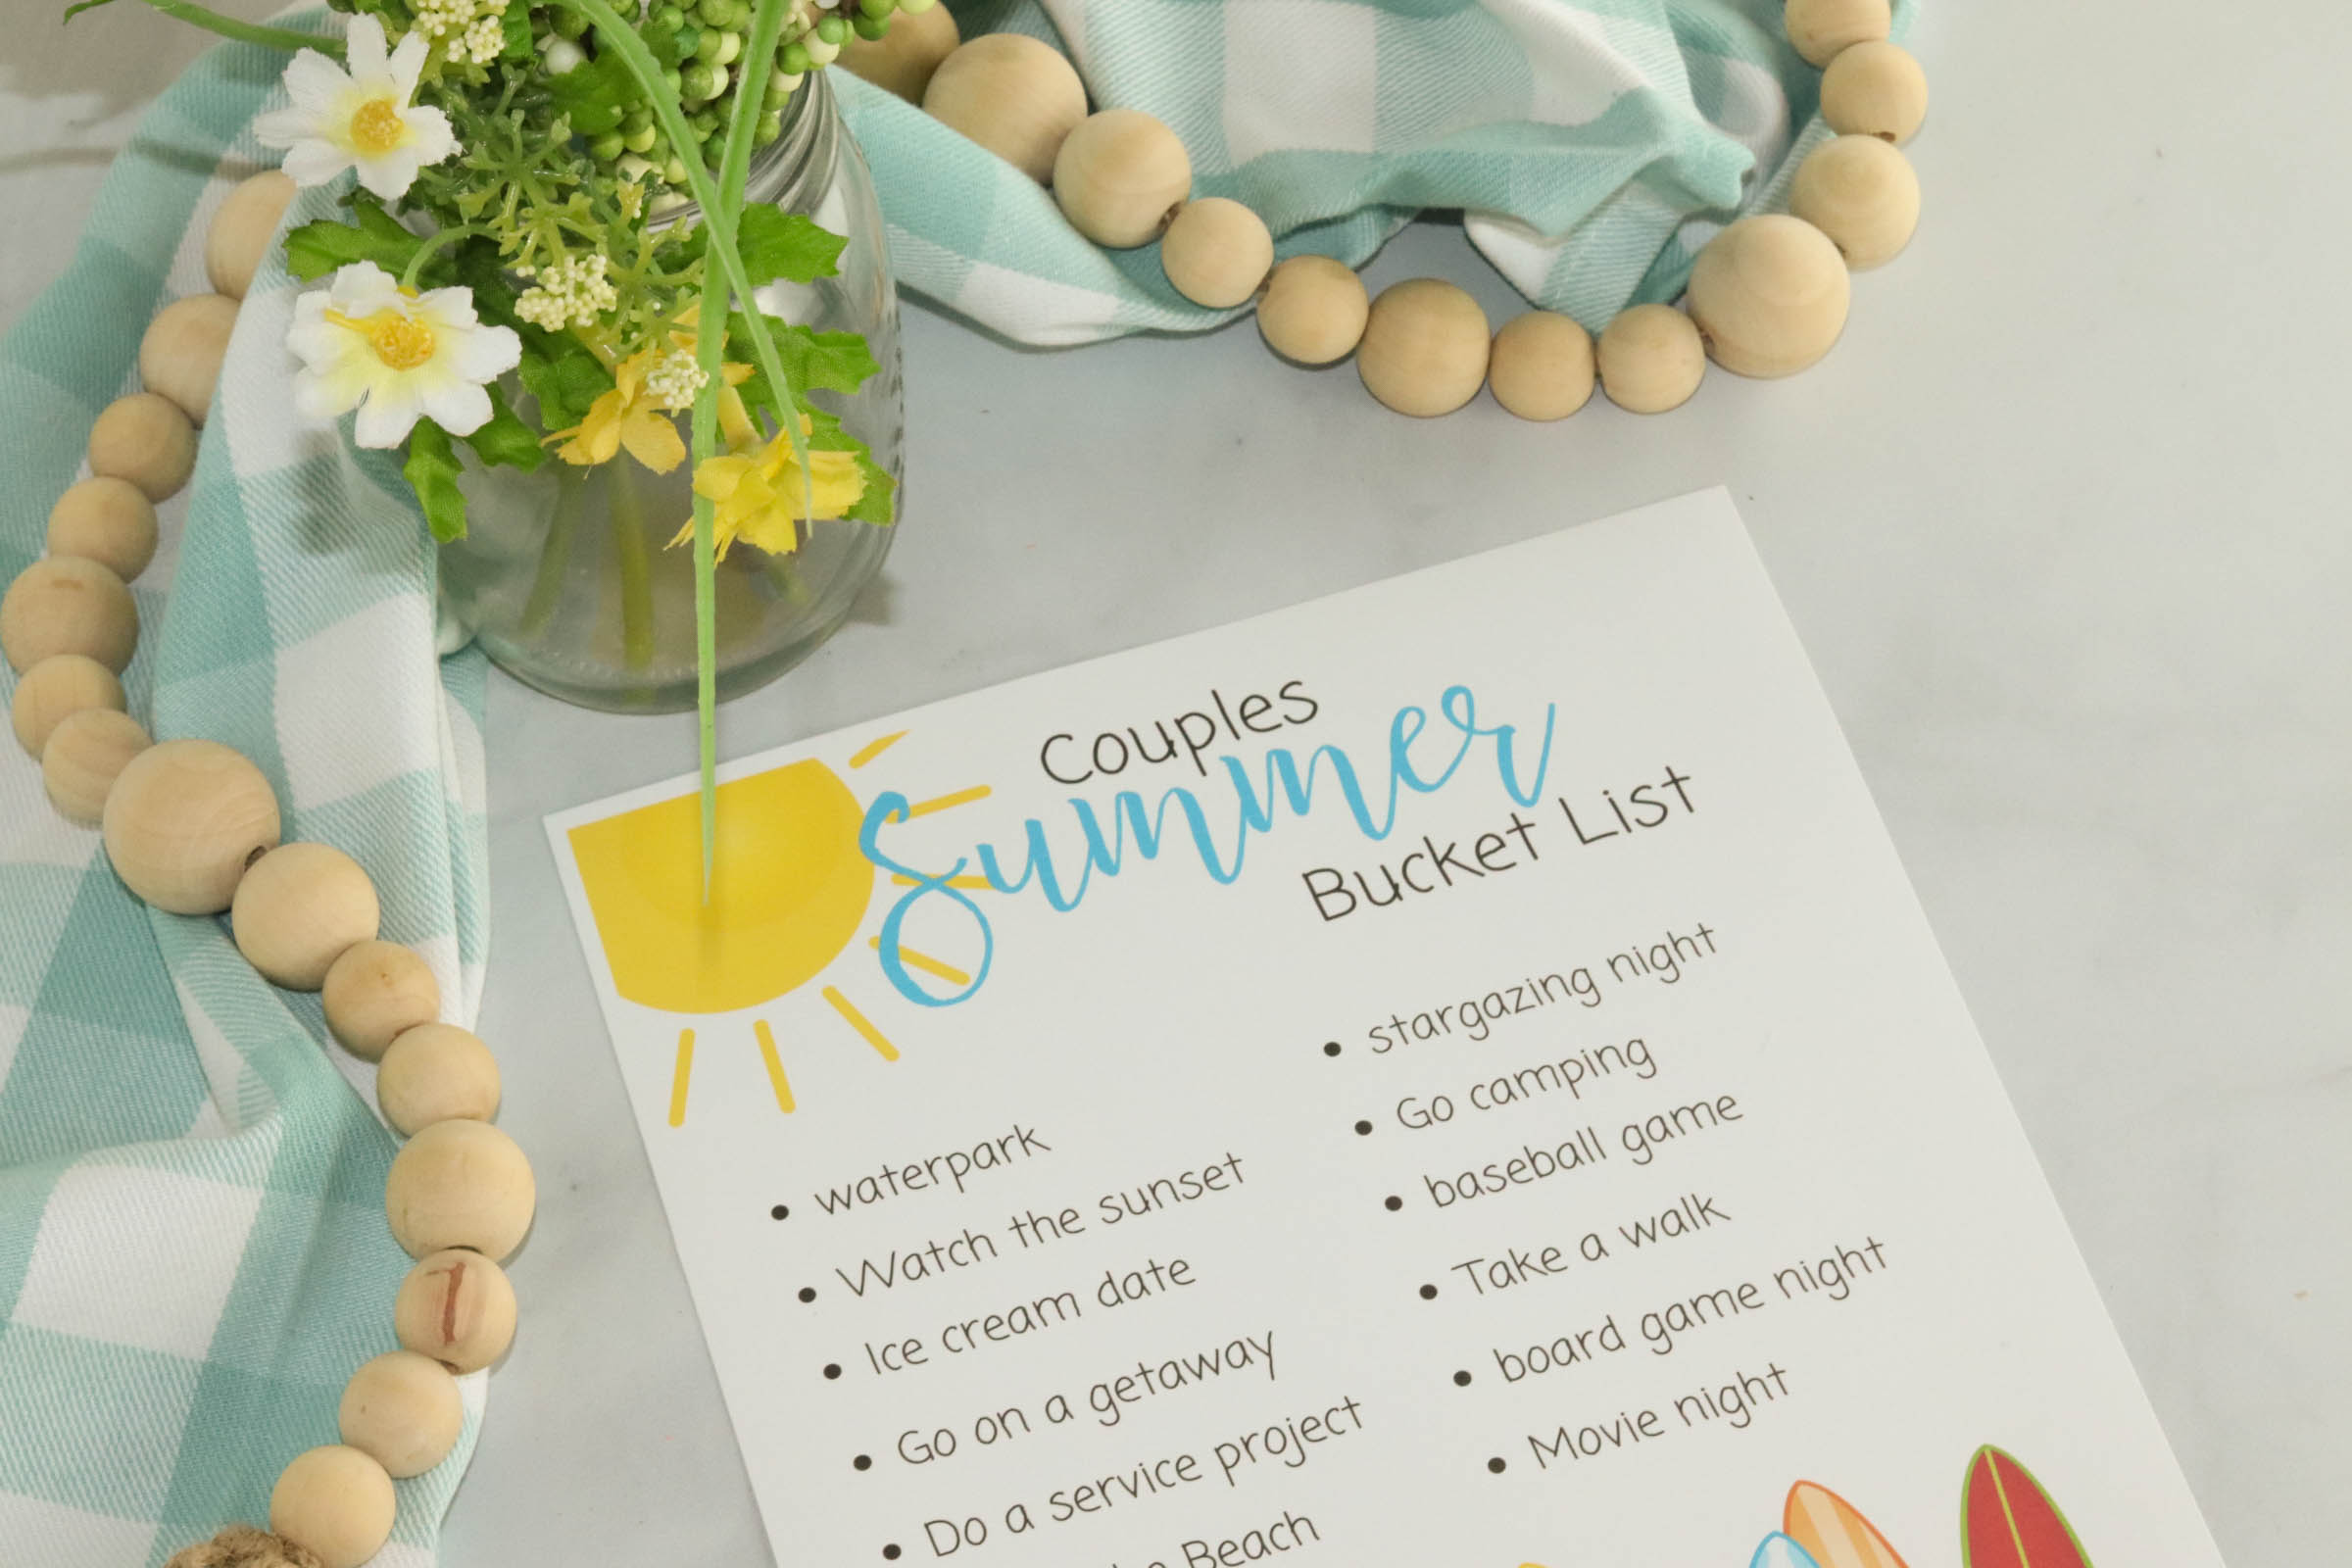 Summer vacation isn't just about your kids! Add a little fun into you and your spouse's summertime with this summer bucket list for couples.